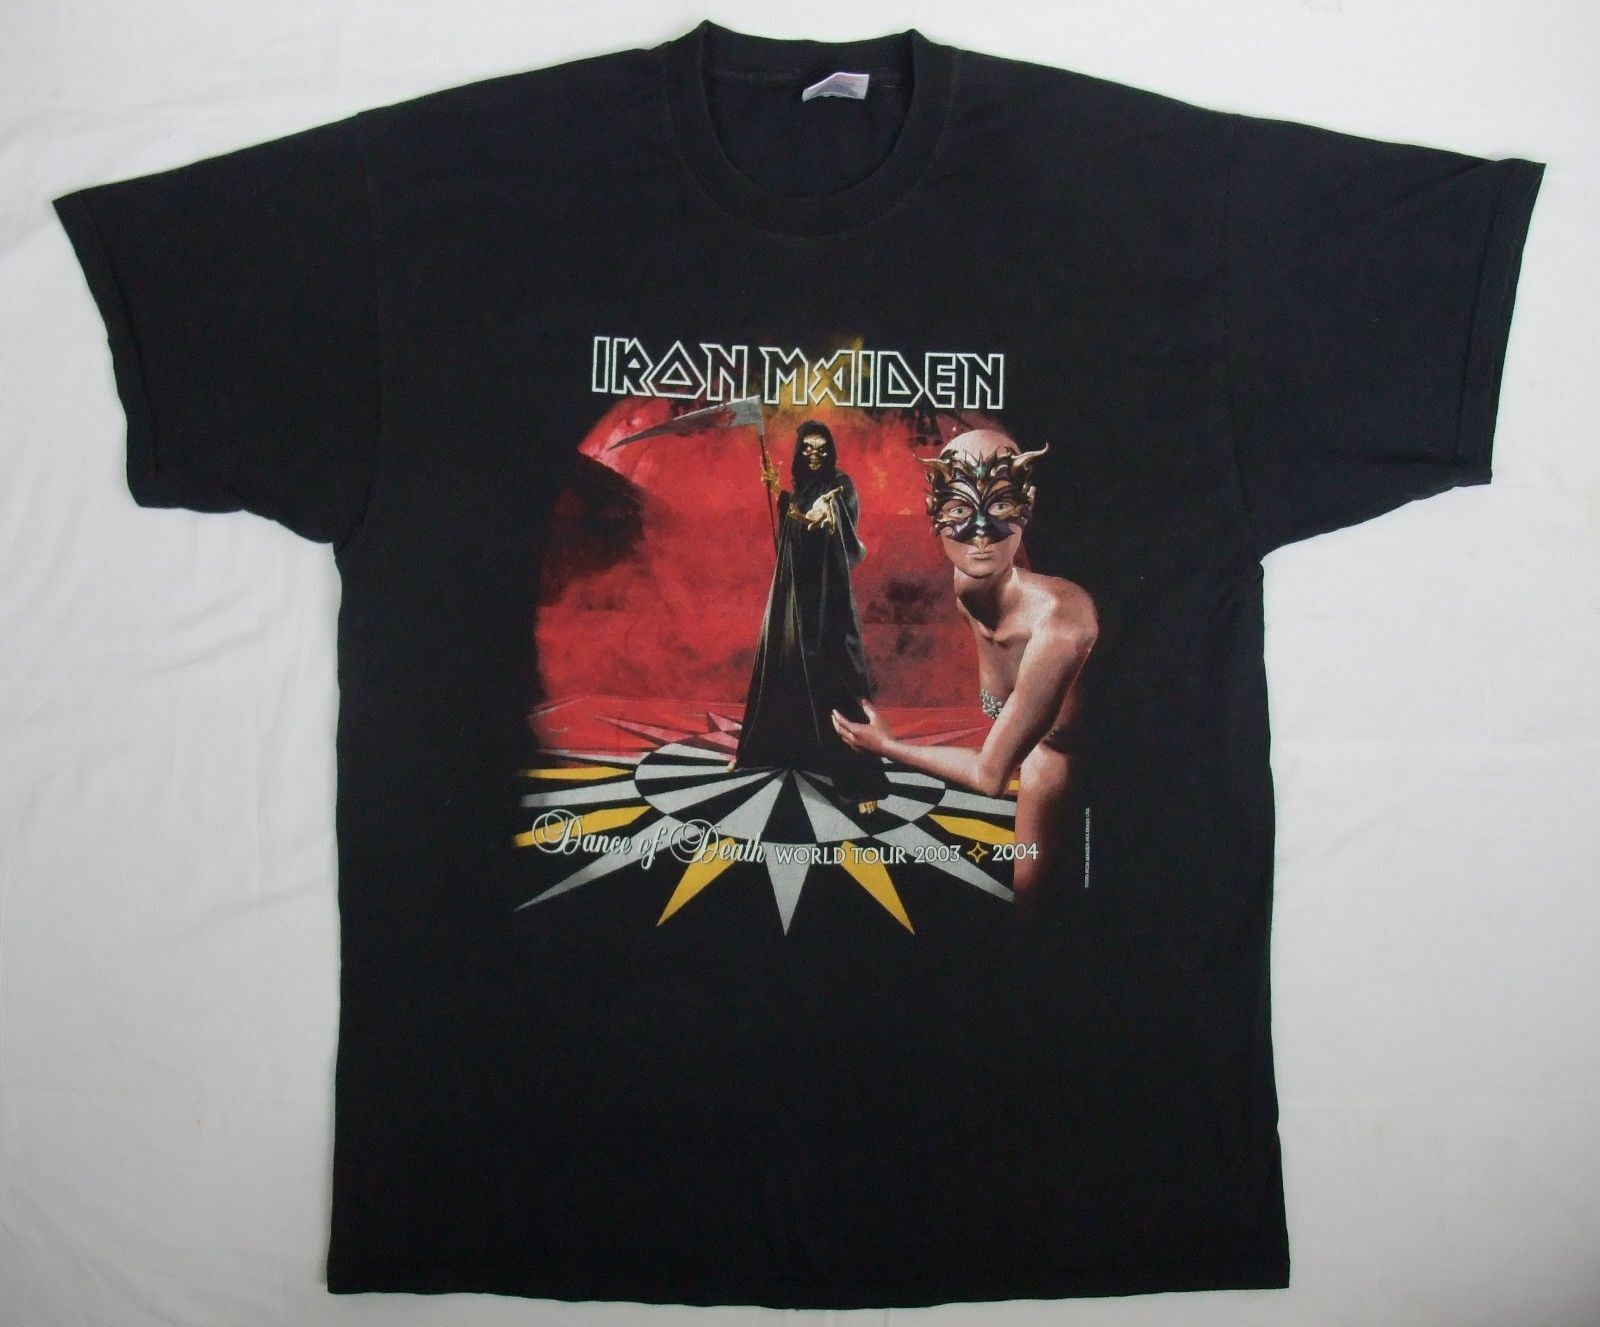 Iron Maiden Dance of the Death rare vtg 2000's UK tour concert t-shirt XL